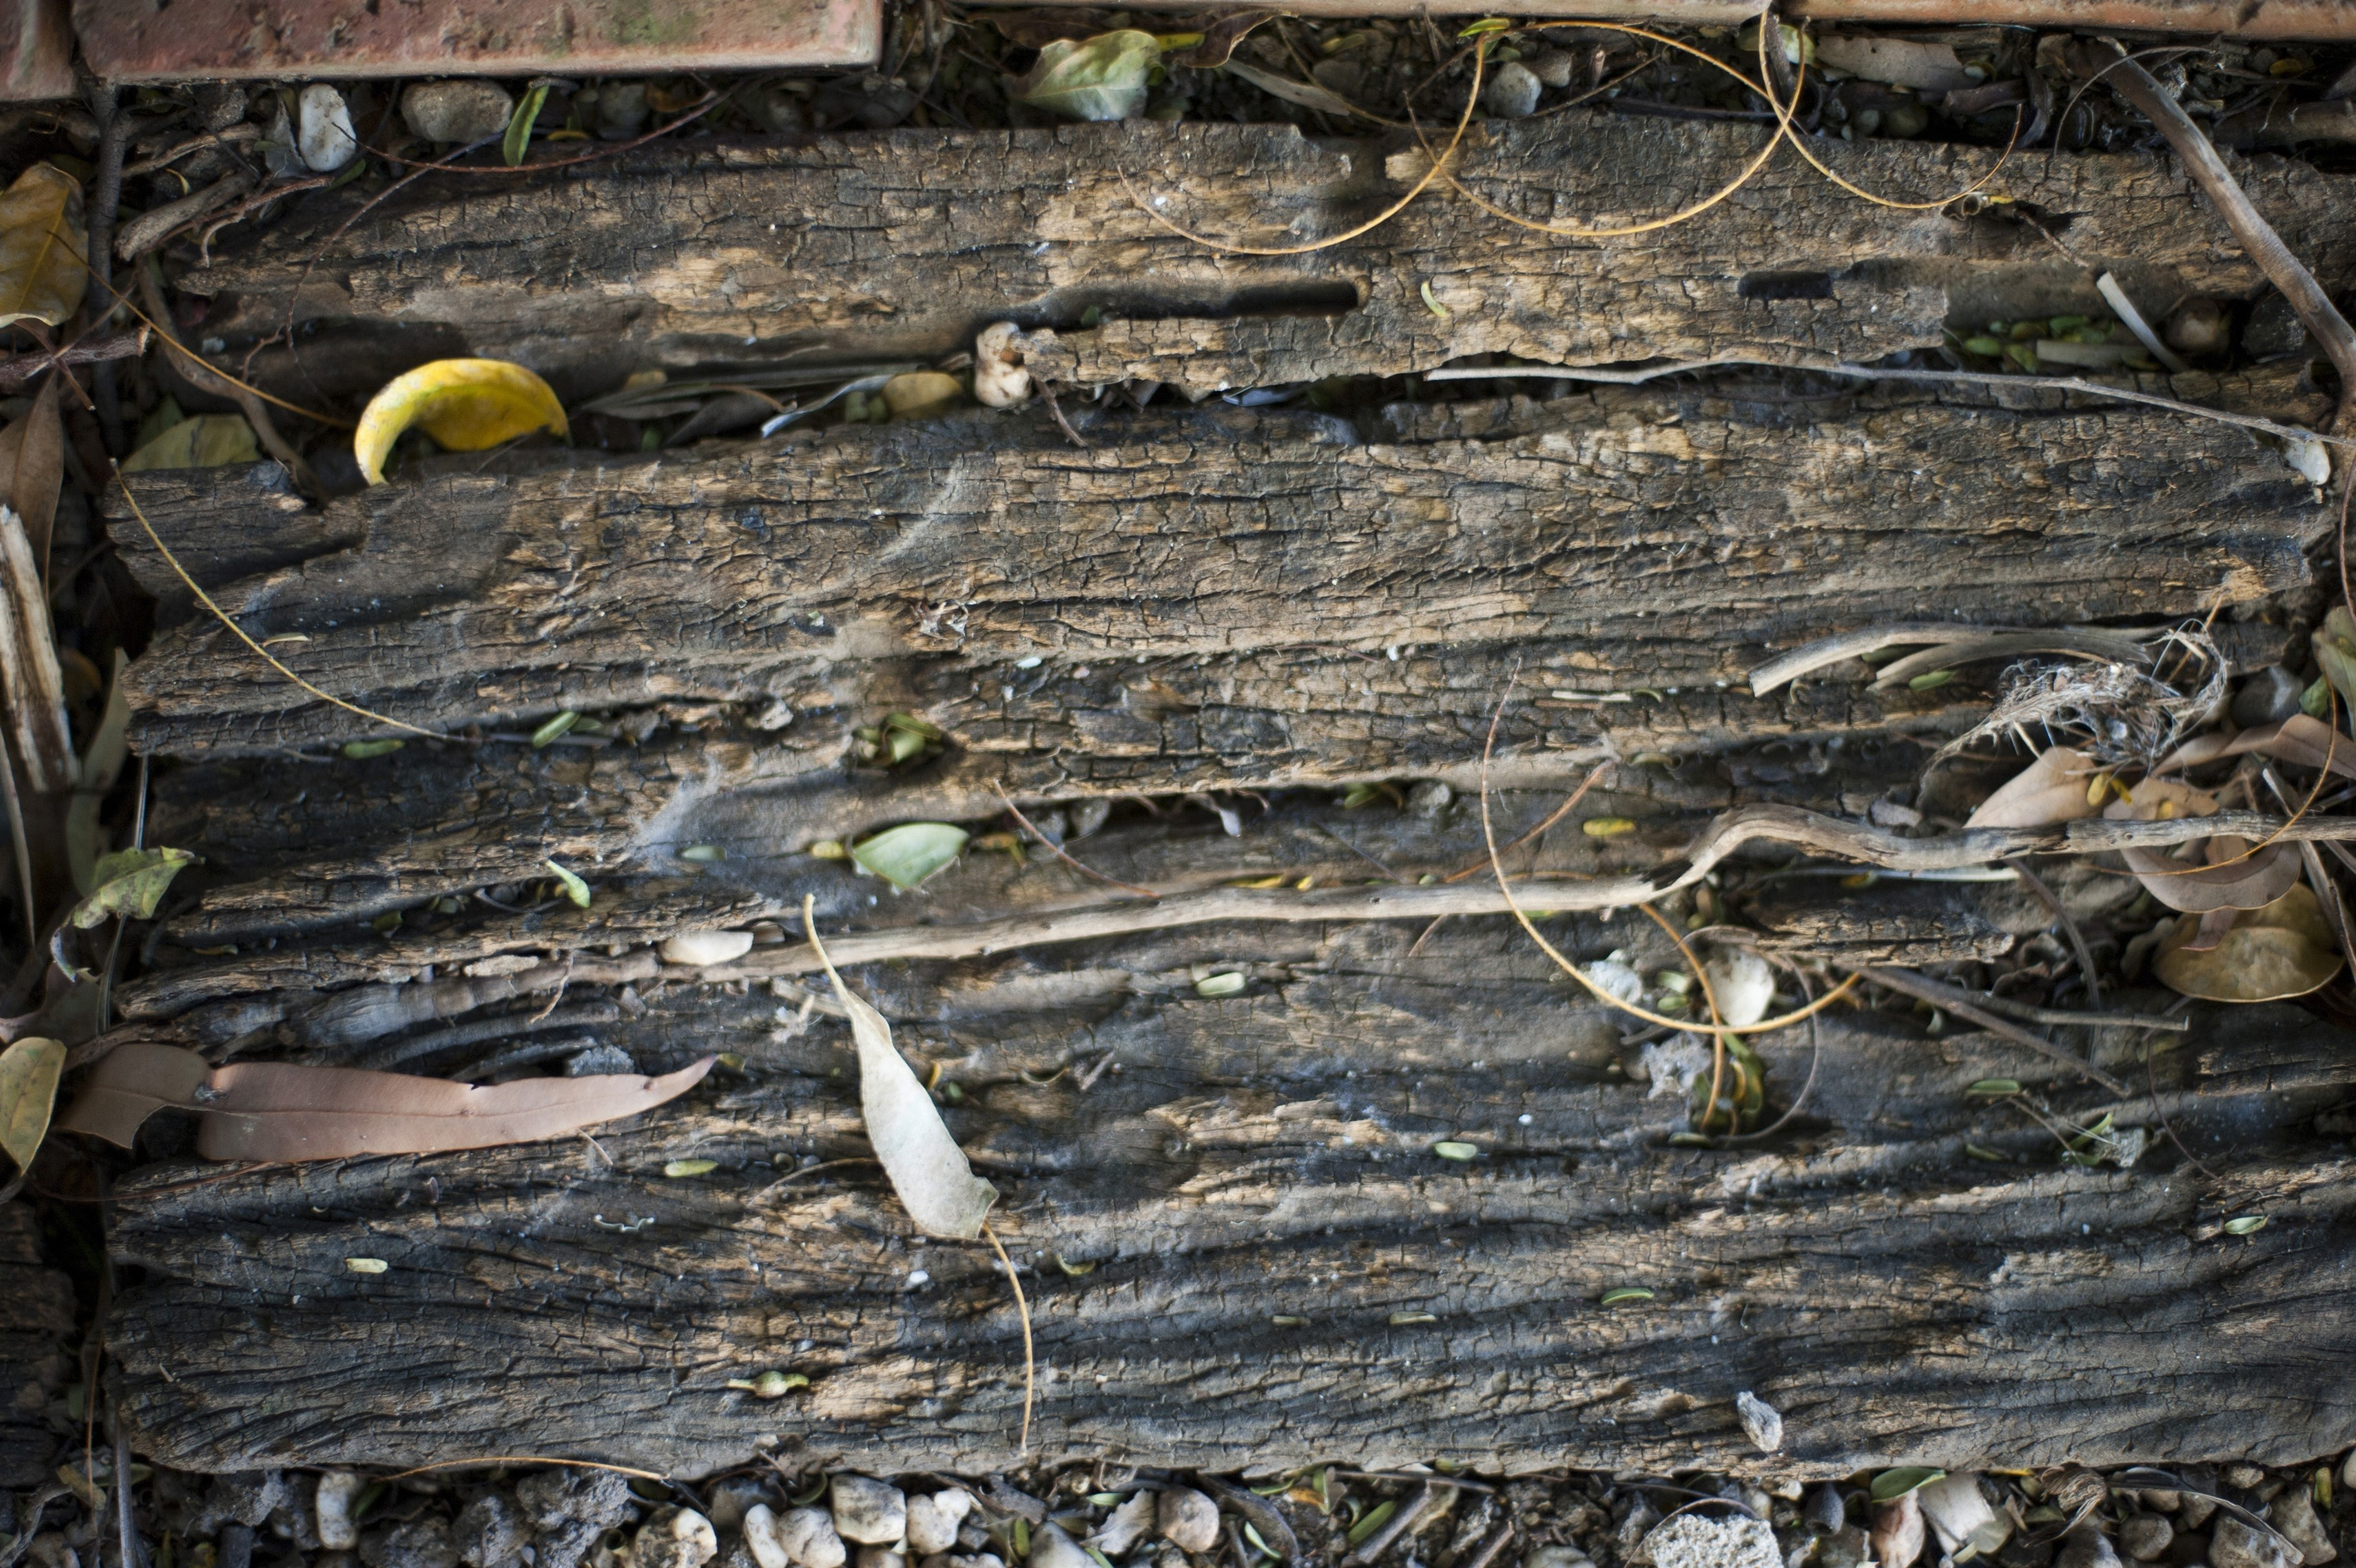 Decaying rotting wood lying on the ground outdoors with scattered leaves, background texture